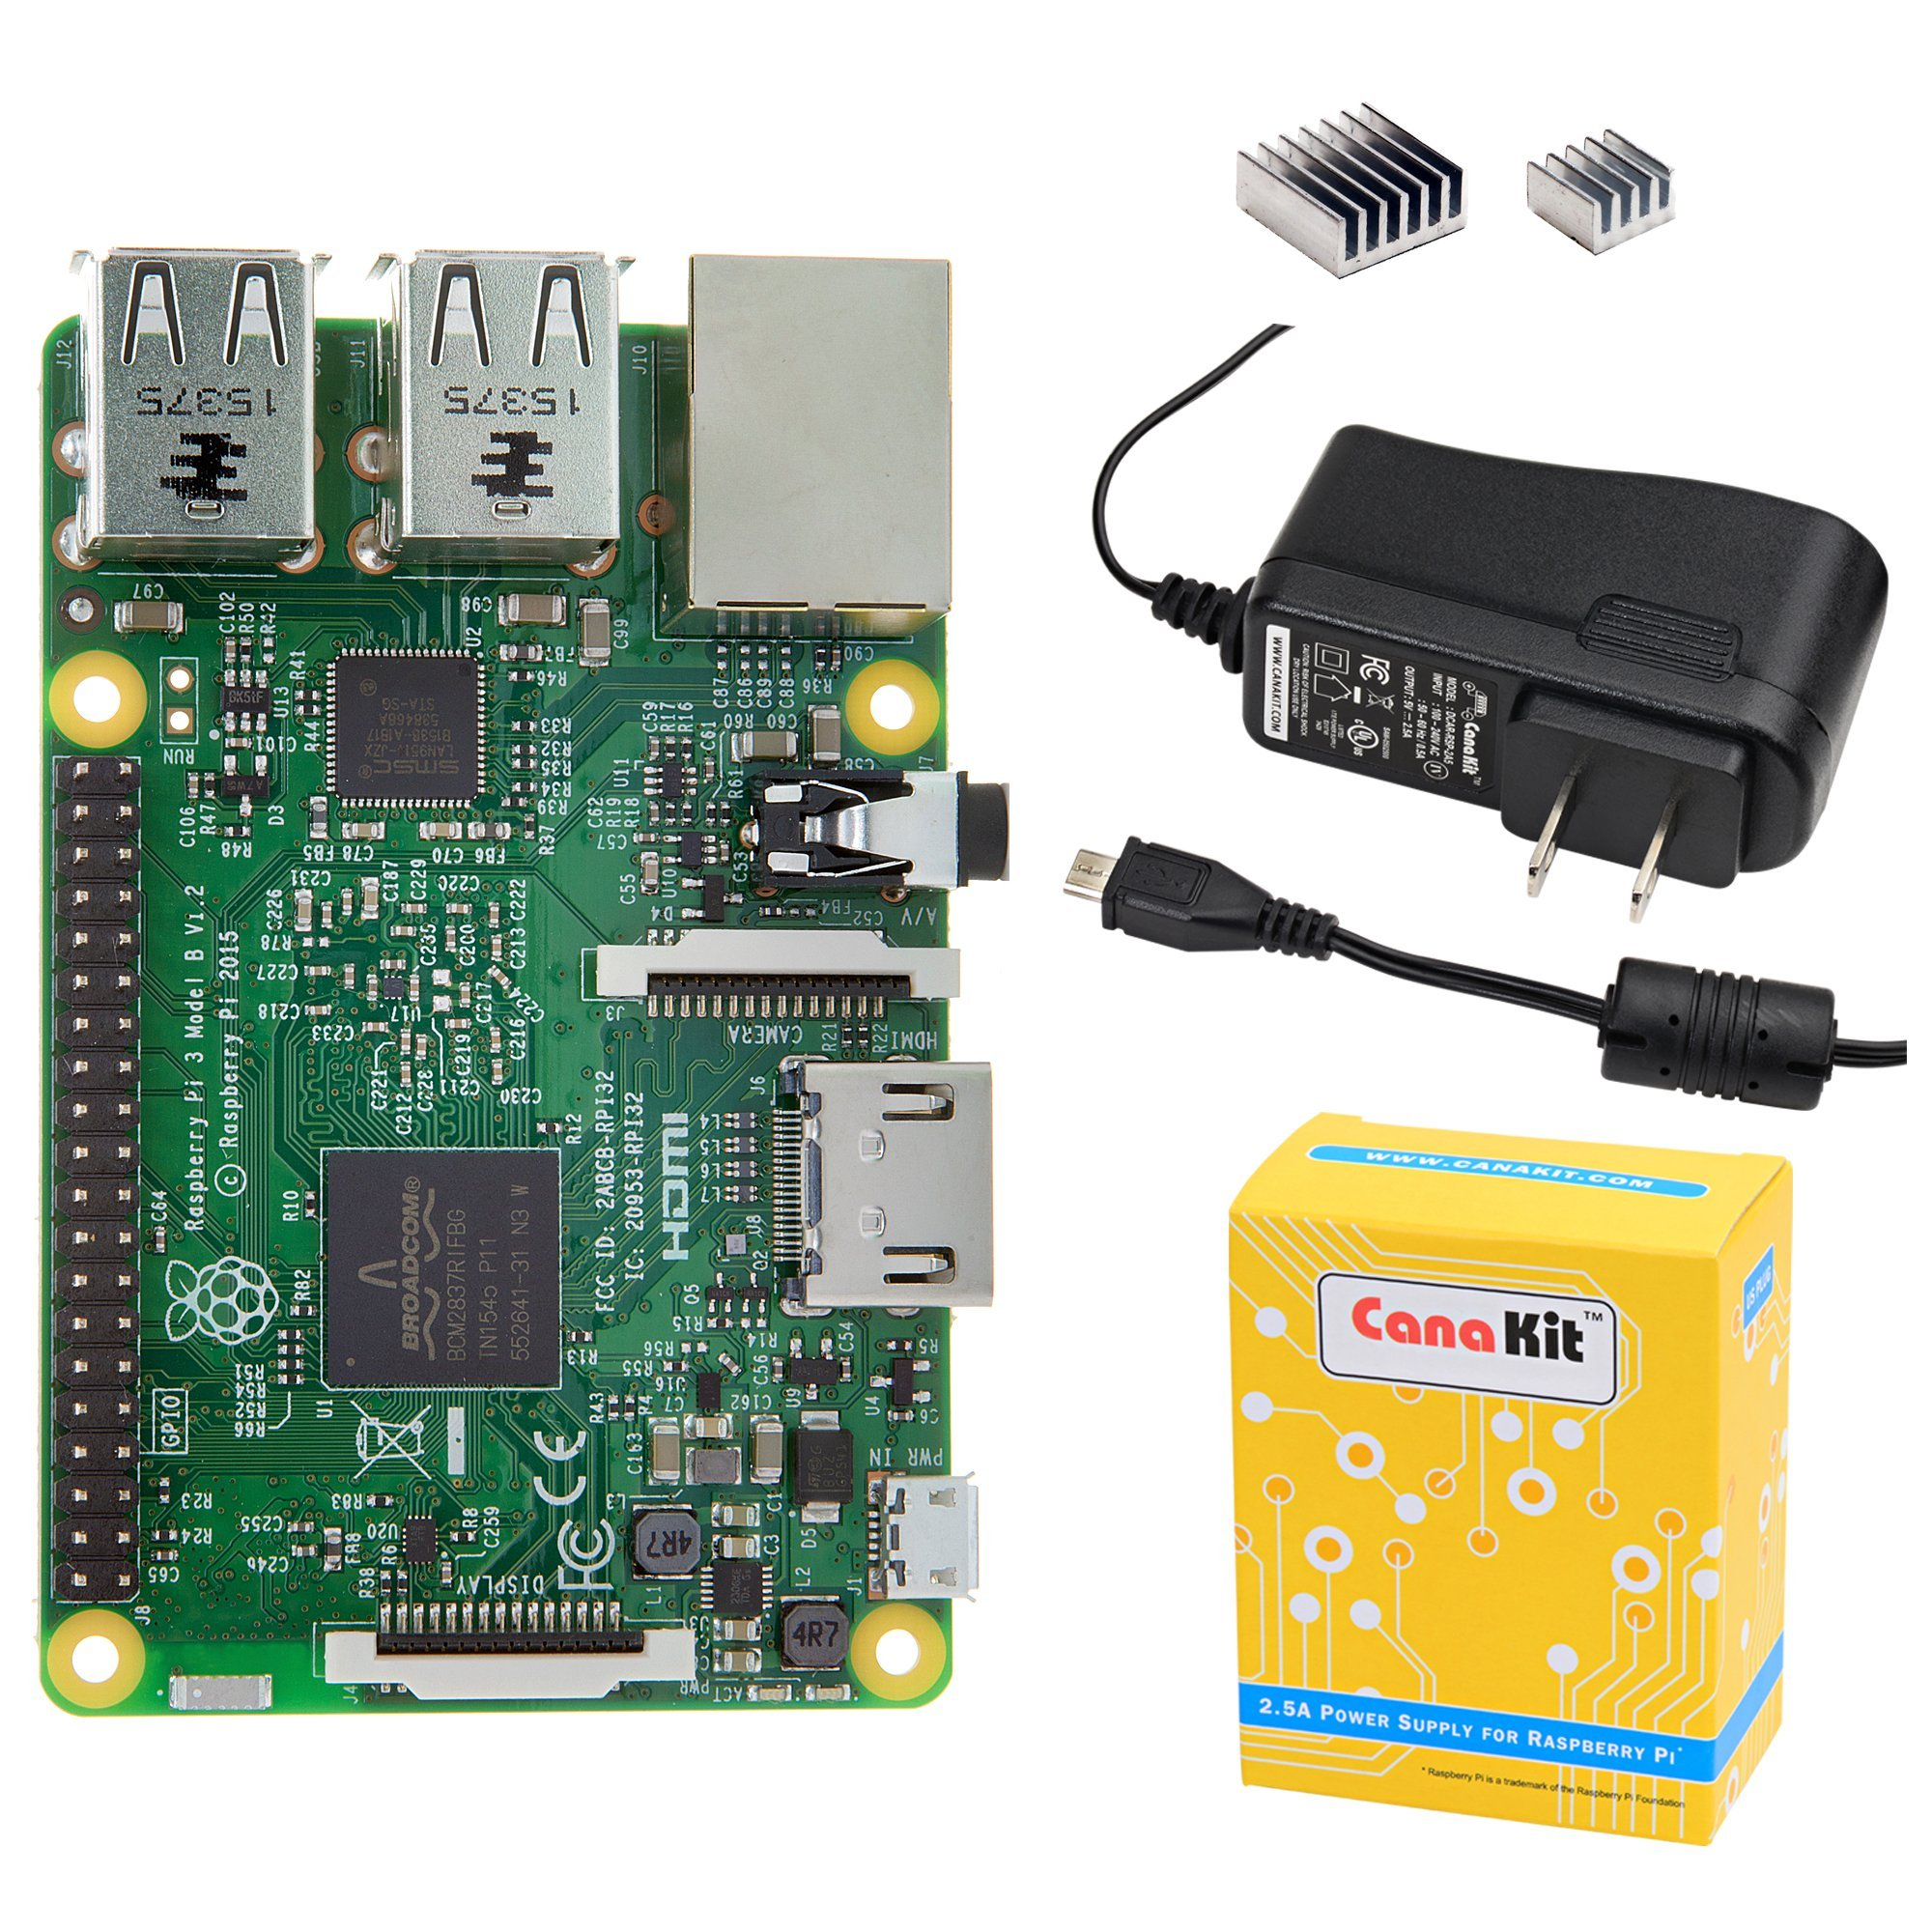 CanaKit Raspberry Pi 3 with 2.5A Micro USB Power Supply (UL Listed) by CanaKit